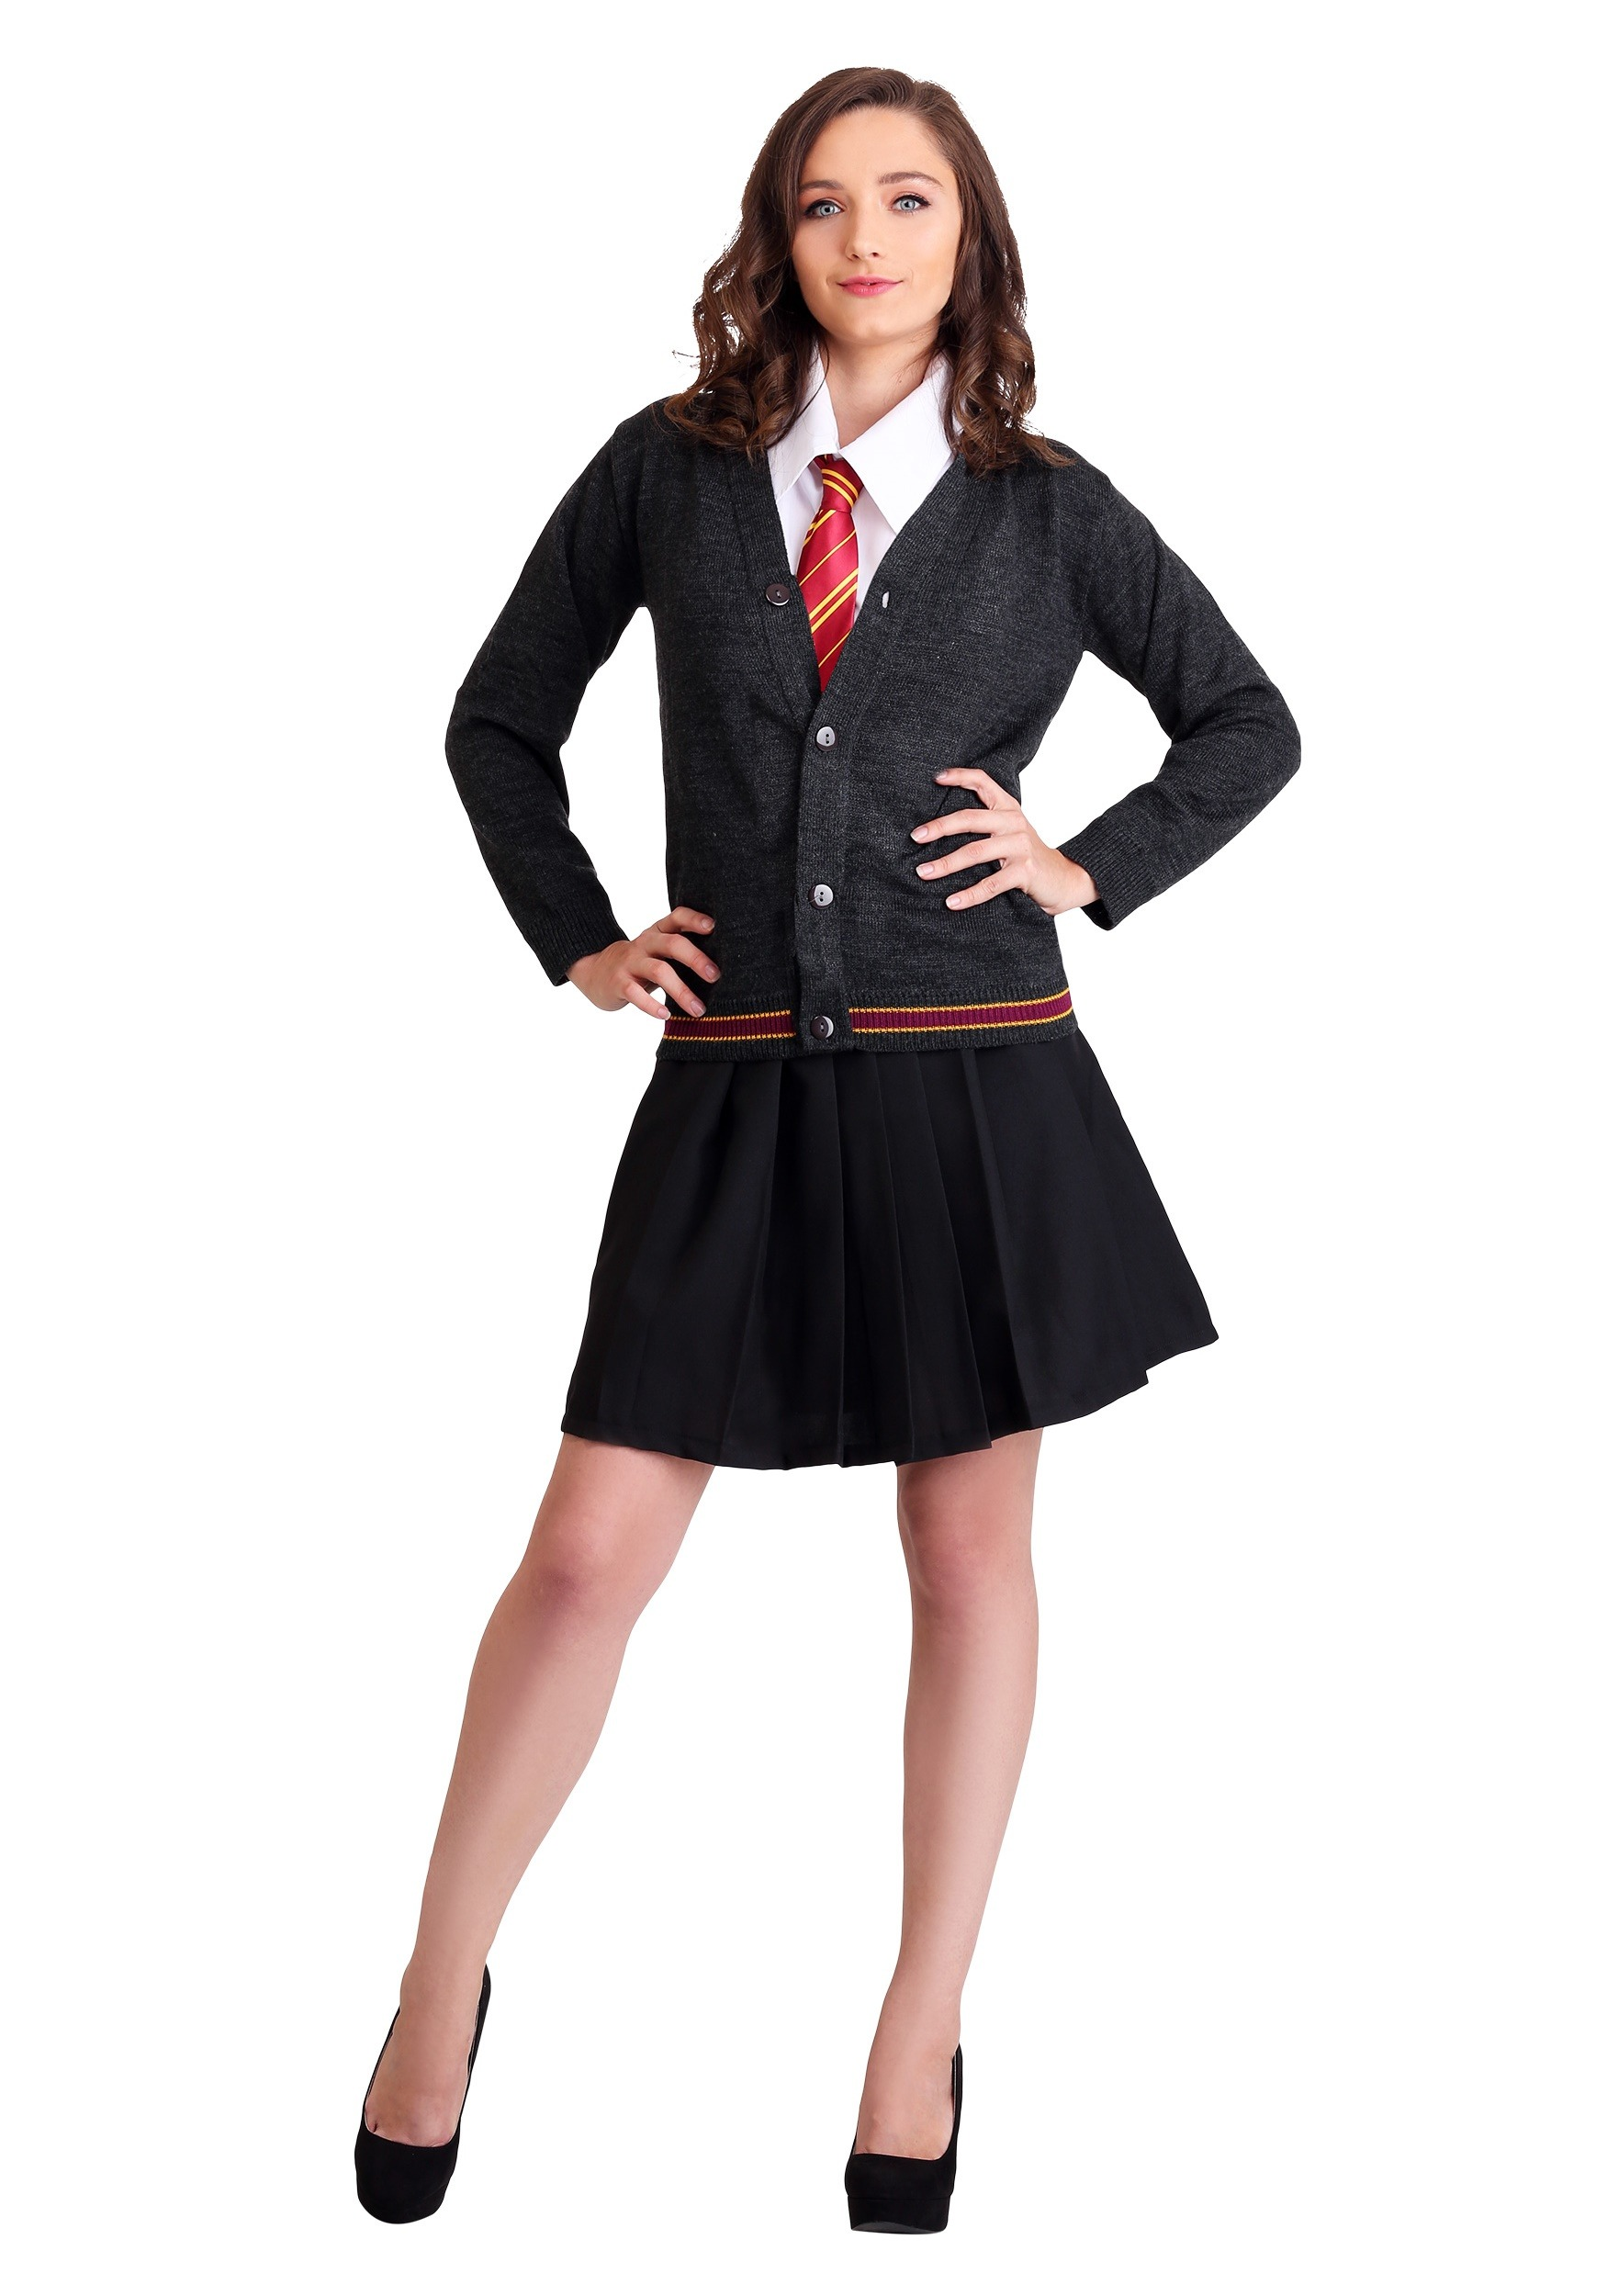 e7cdcc893ef Plus Size Hermione Women s Costume from Harry Potter 1X 3X